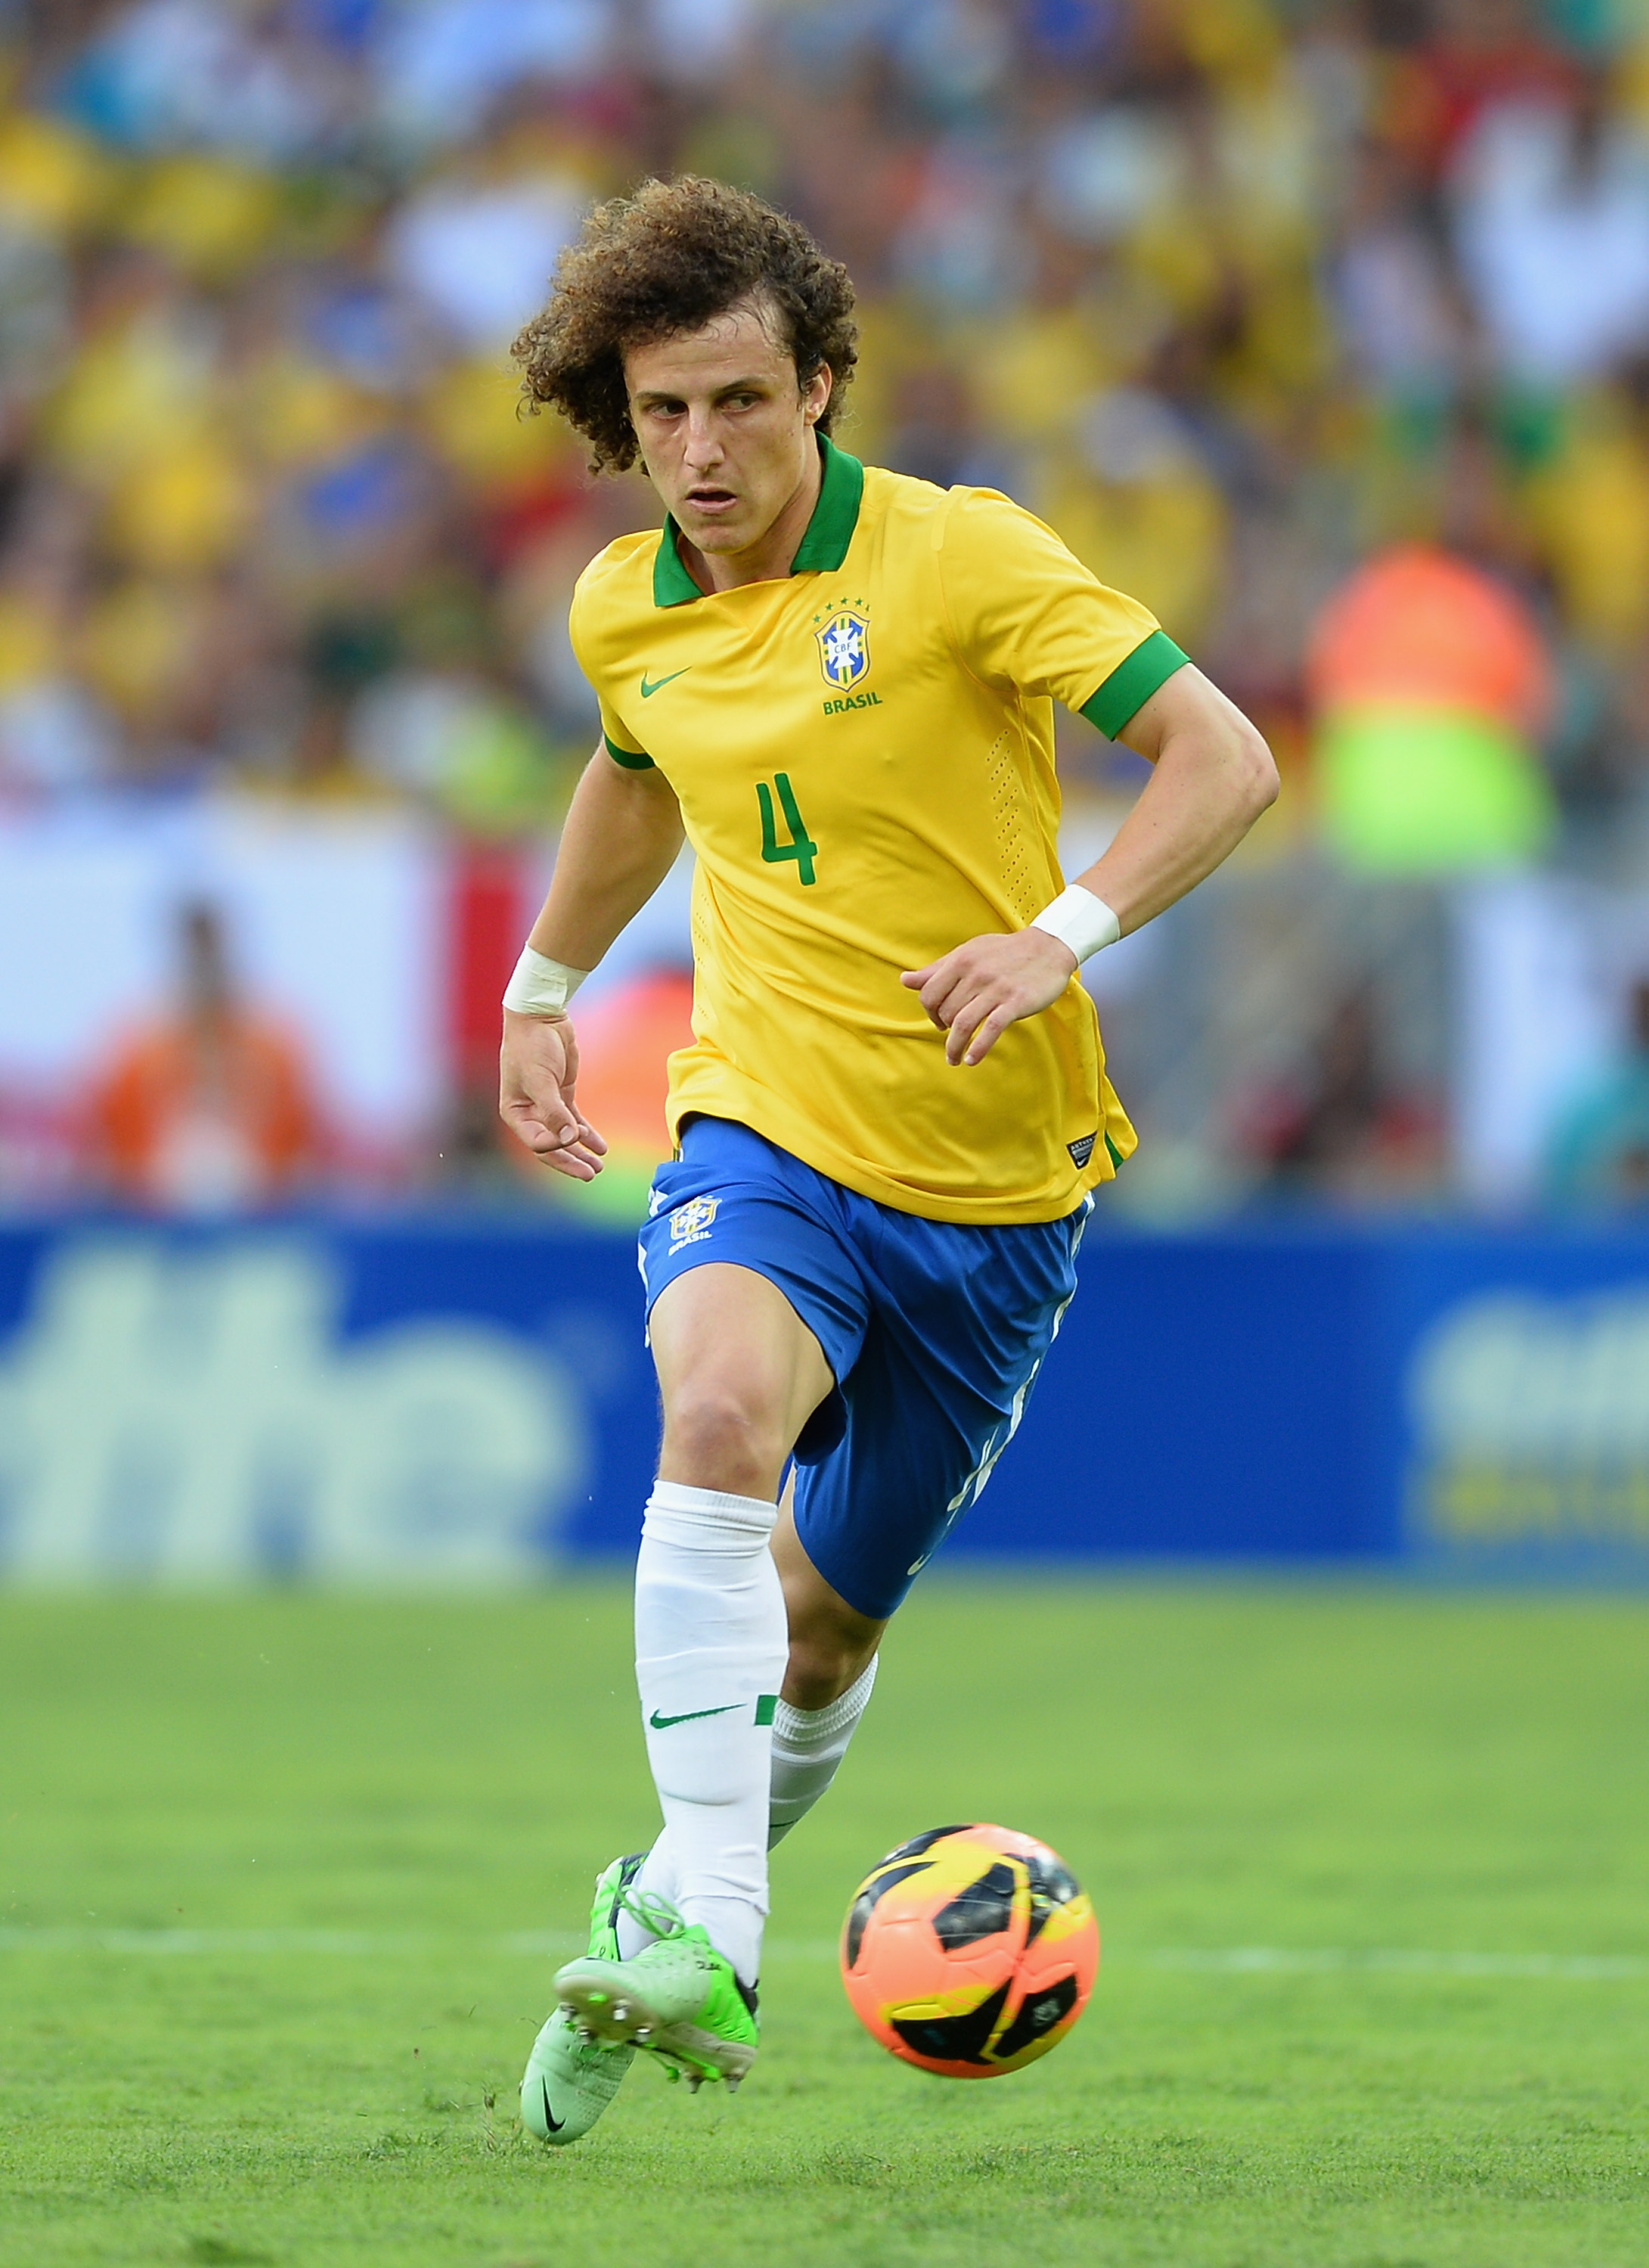 Sunday 07th June 2015 David Luiz Celebrities Image Galleries 2181x3000